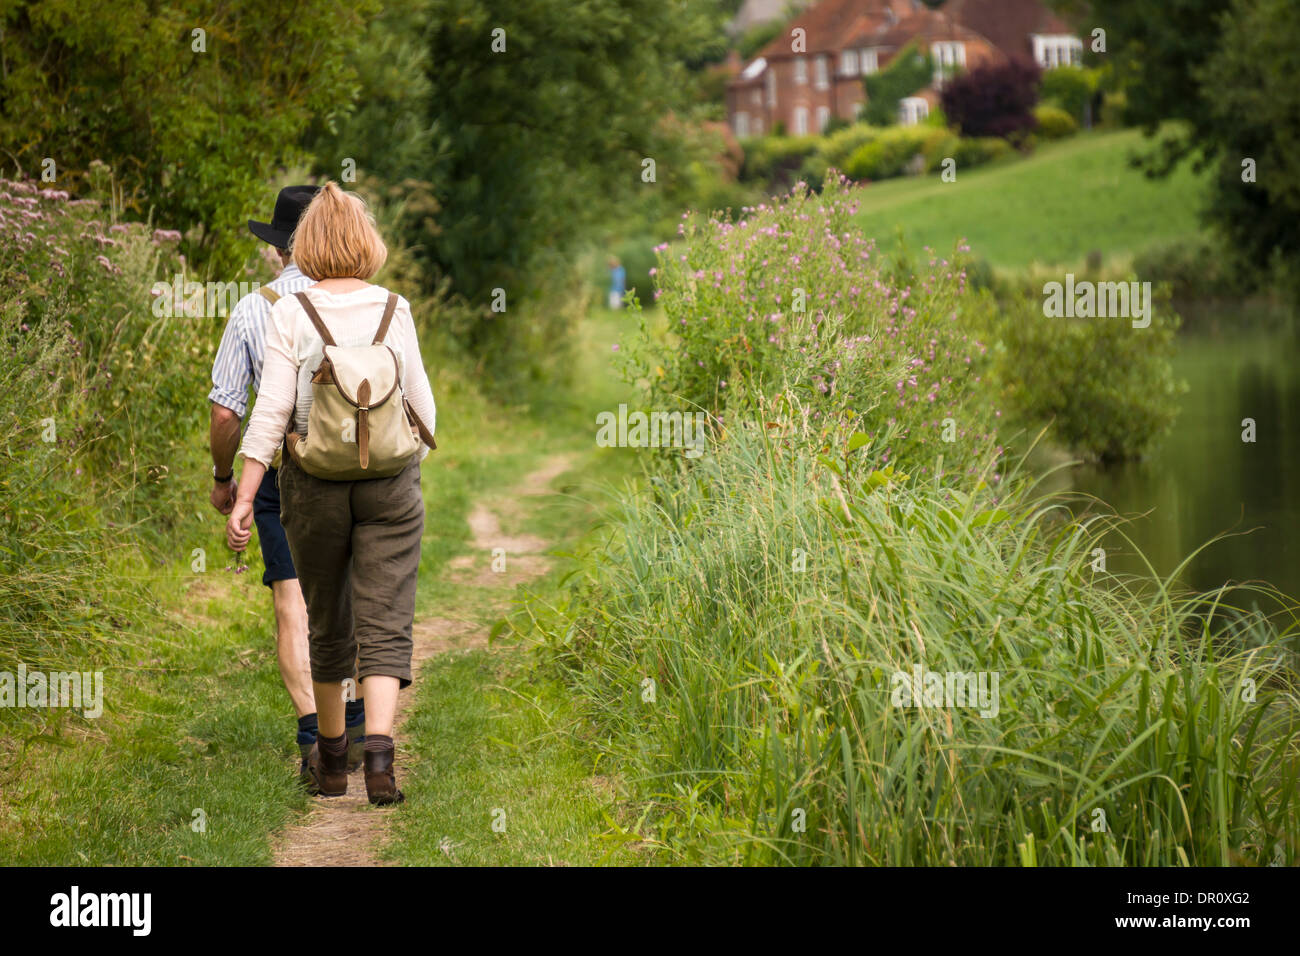 Two Ramblers walk along a canal footpath in Berkshire. - Stock Image